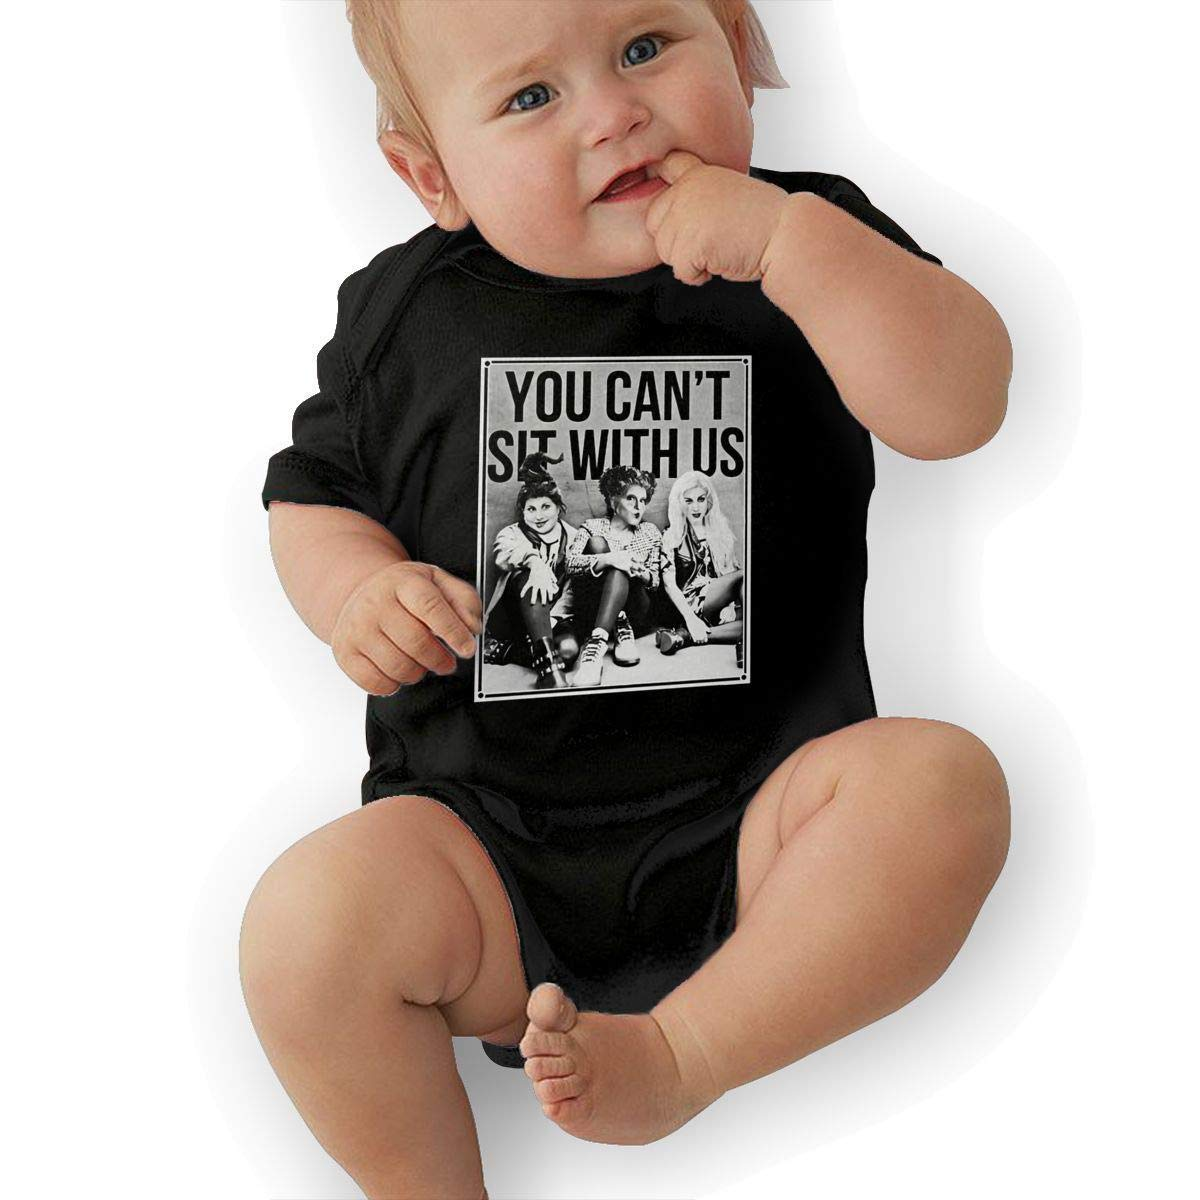 SHWPAKFA Baby You Cant Sit with Adorable Soft Music Band Jersey Creeping Suit,Black,6M